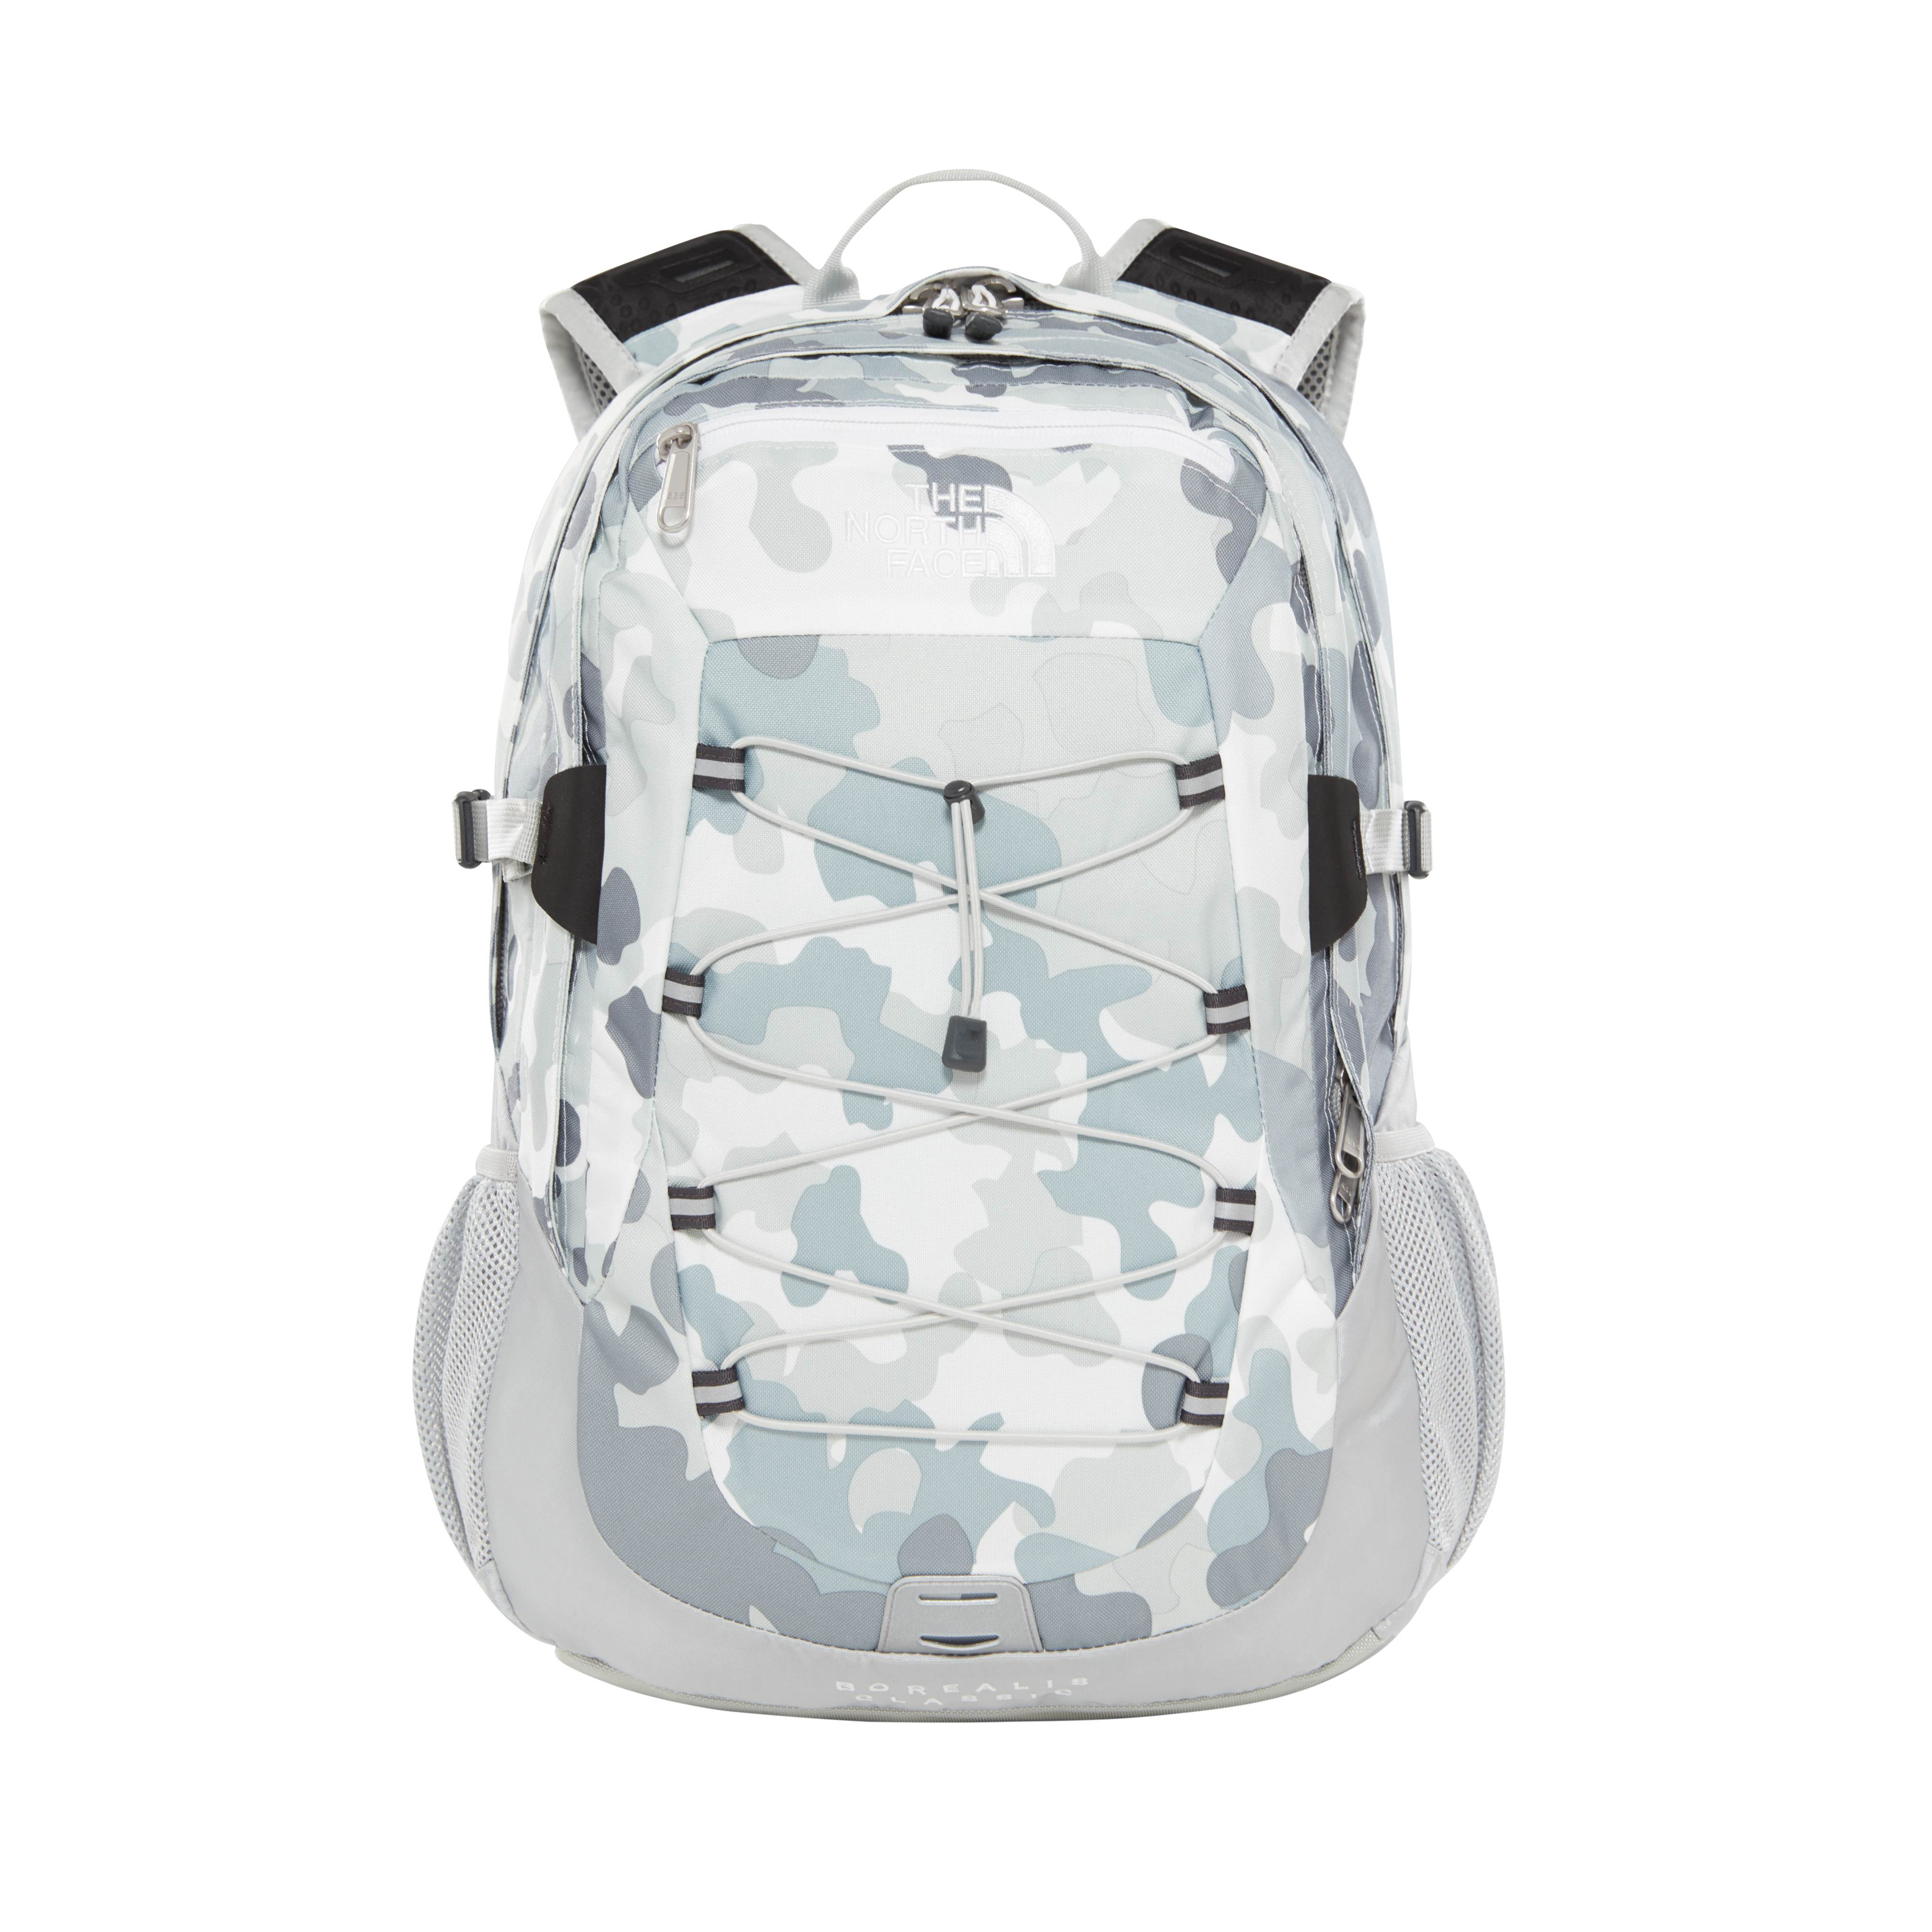 THE NORTH FACE BOREALIS CLASSIC WHITE/CAMOM PRINT/HIGH RISE G